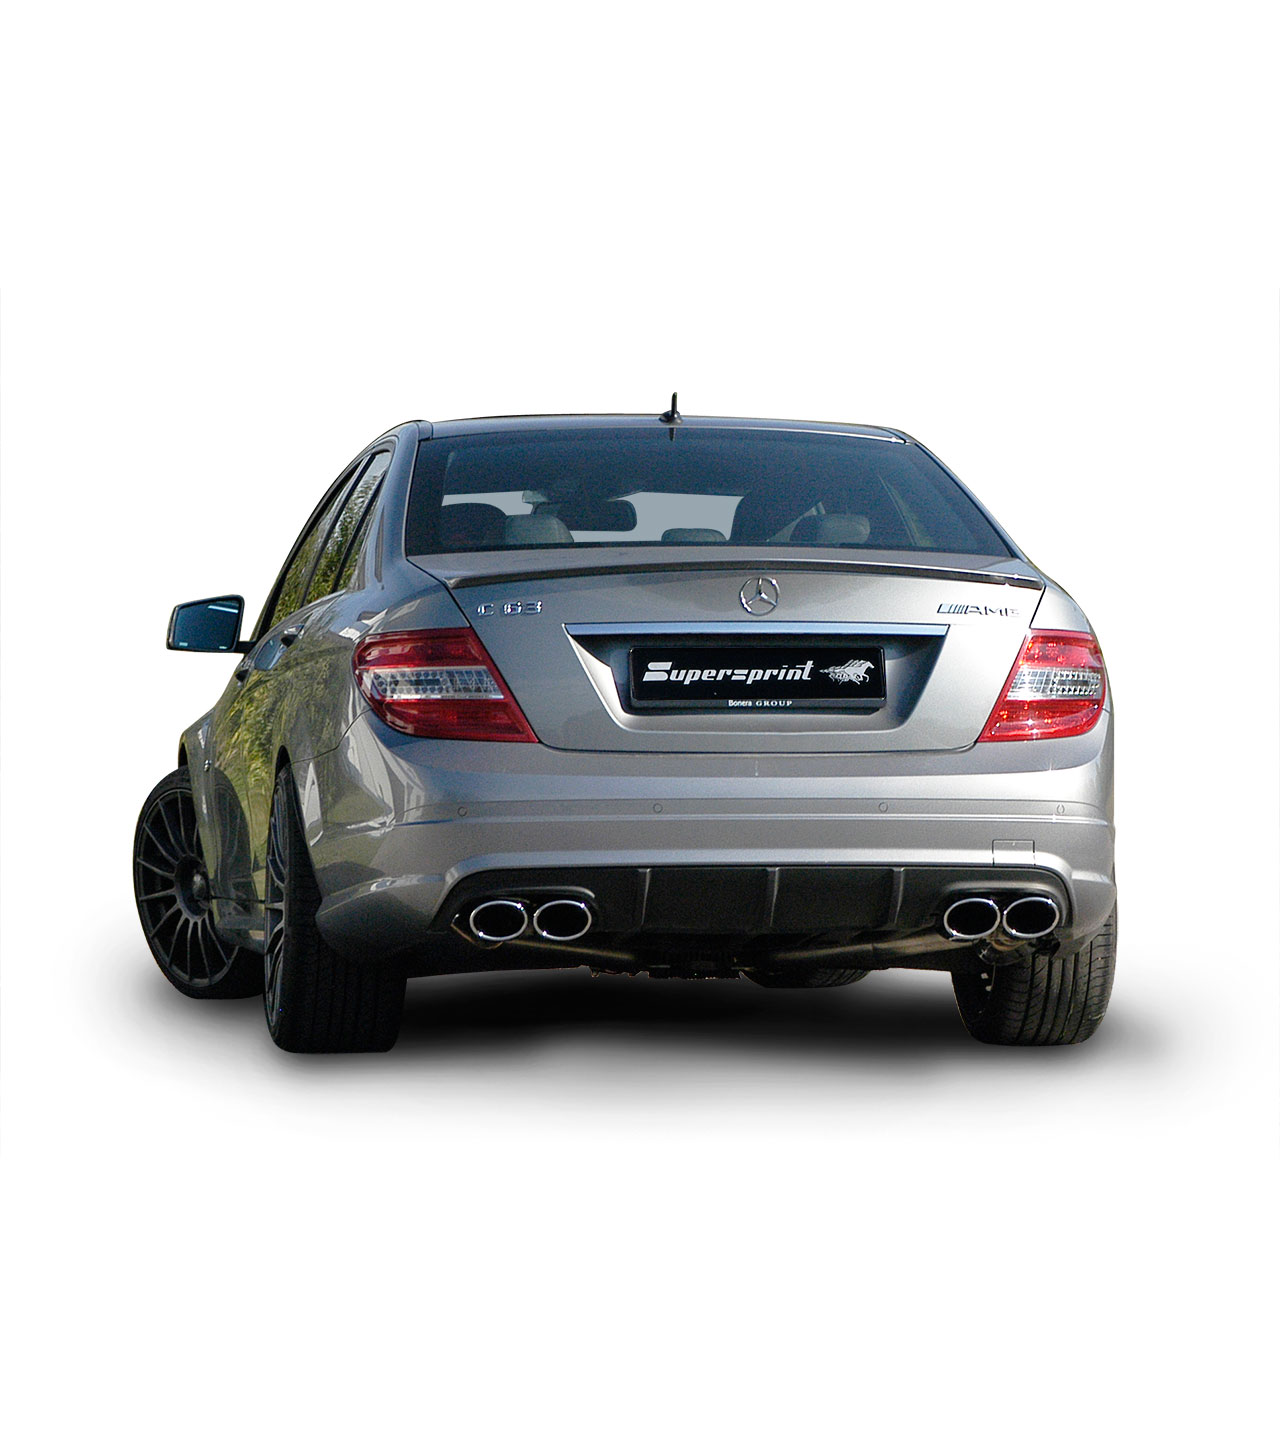 Performance Sport Exhaust For MERCEDES W204 C63 AMG V8 456